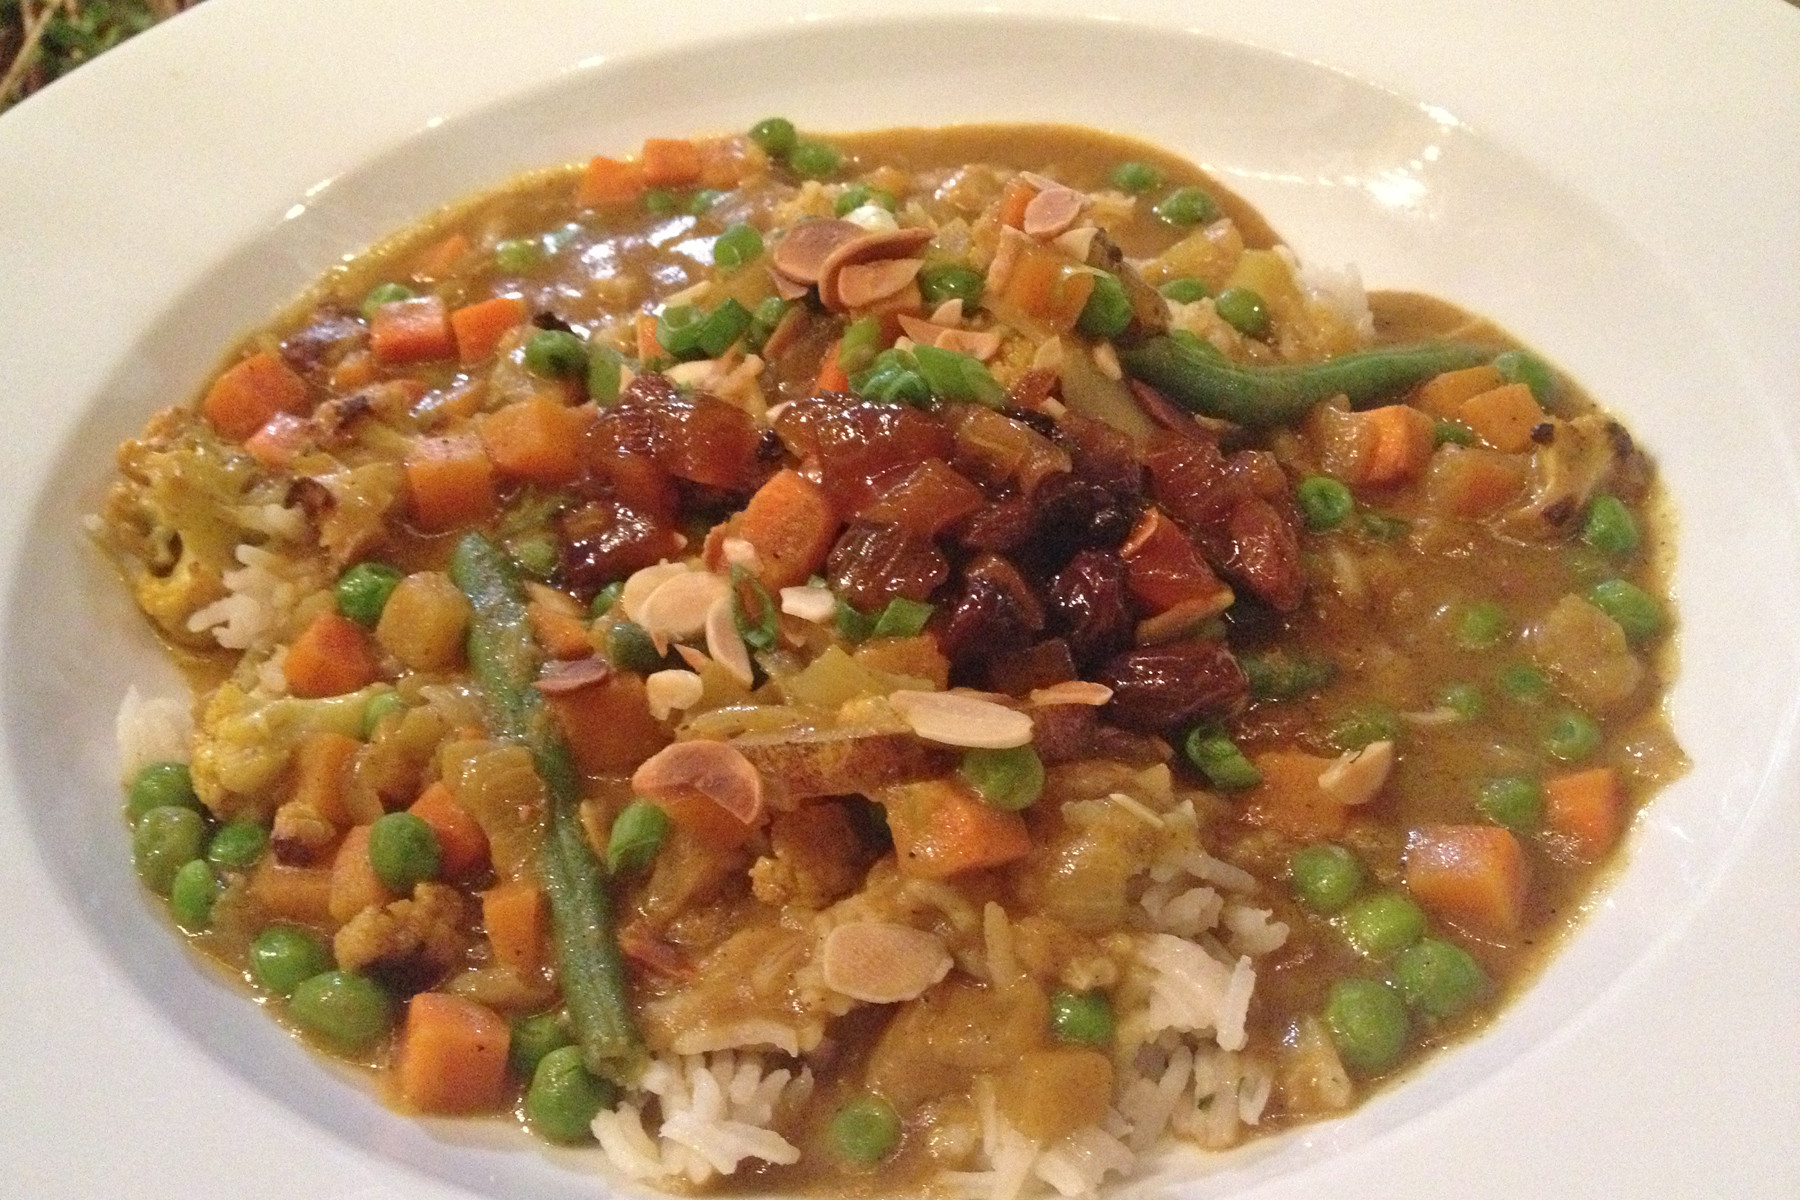 Veggie curry atop basmati rice is available at lunch or dinner and is chock full of carrots, peas and cauliflower.